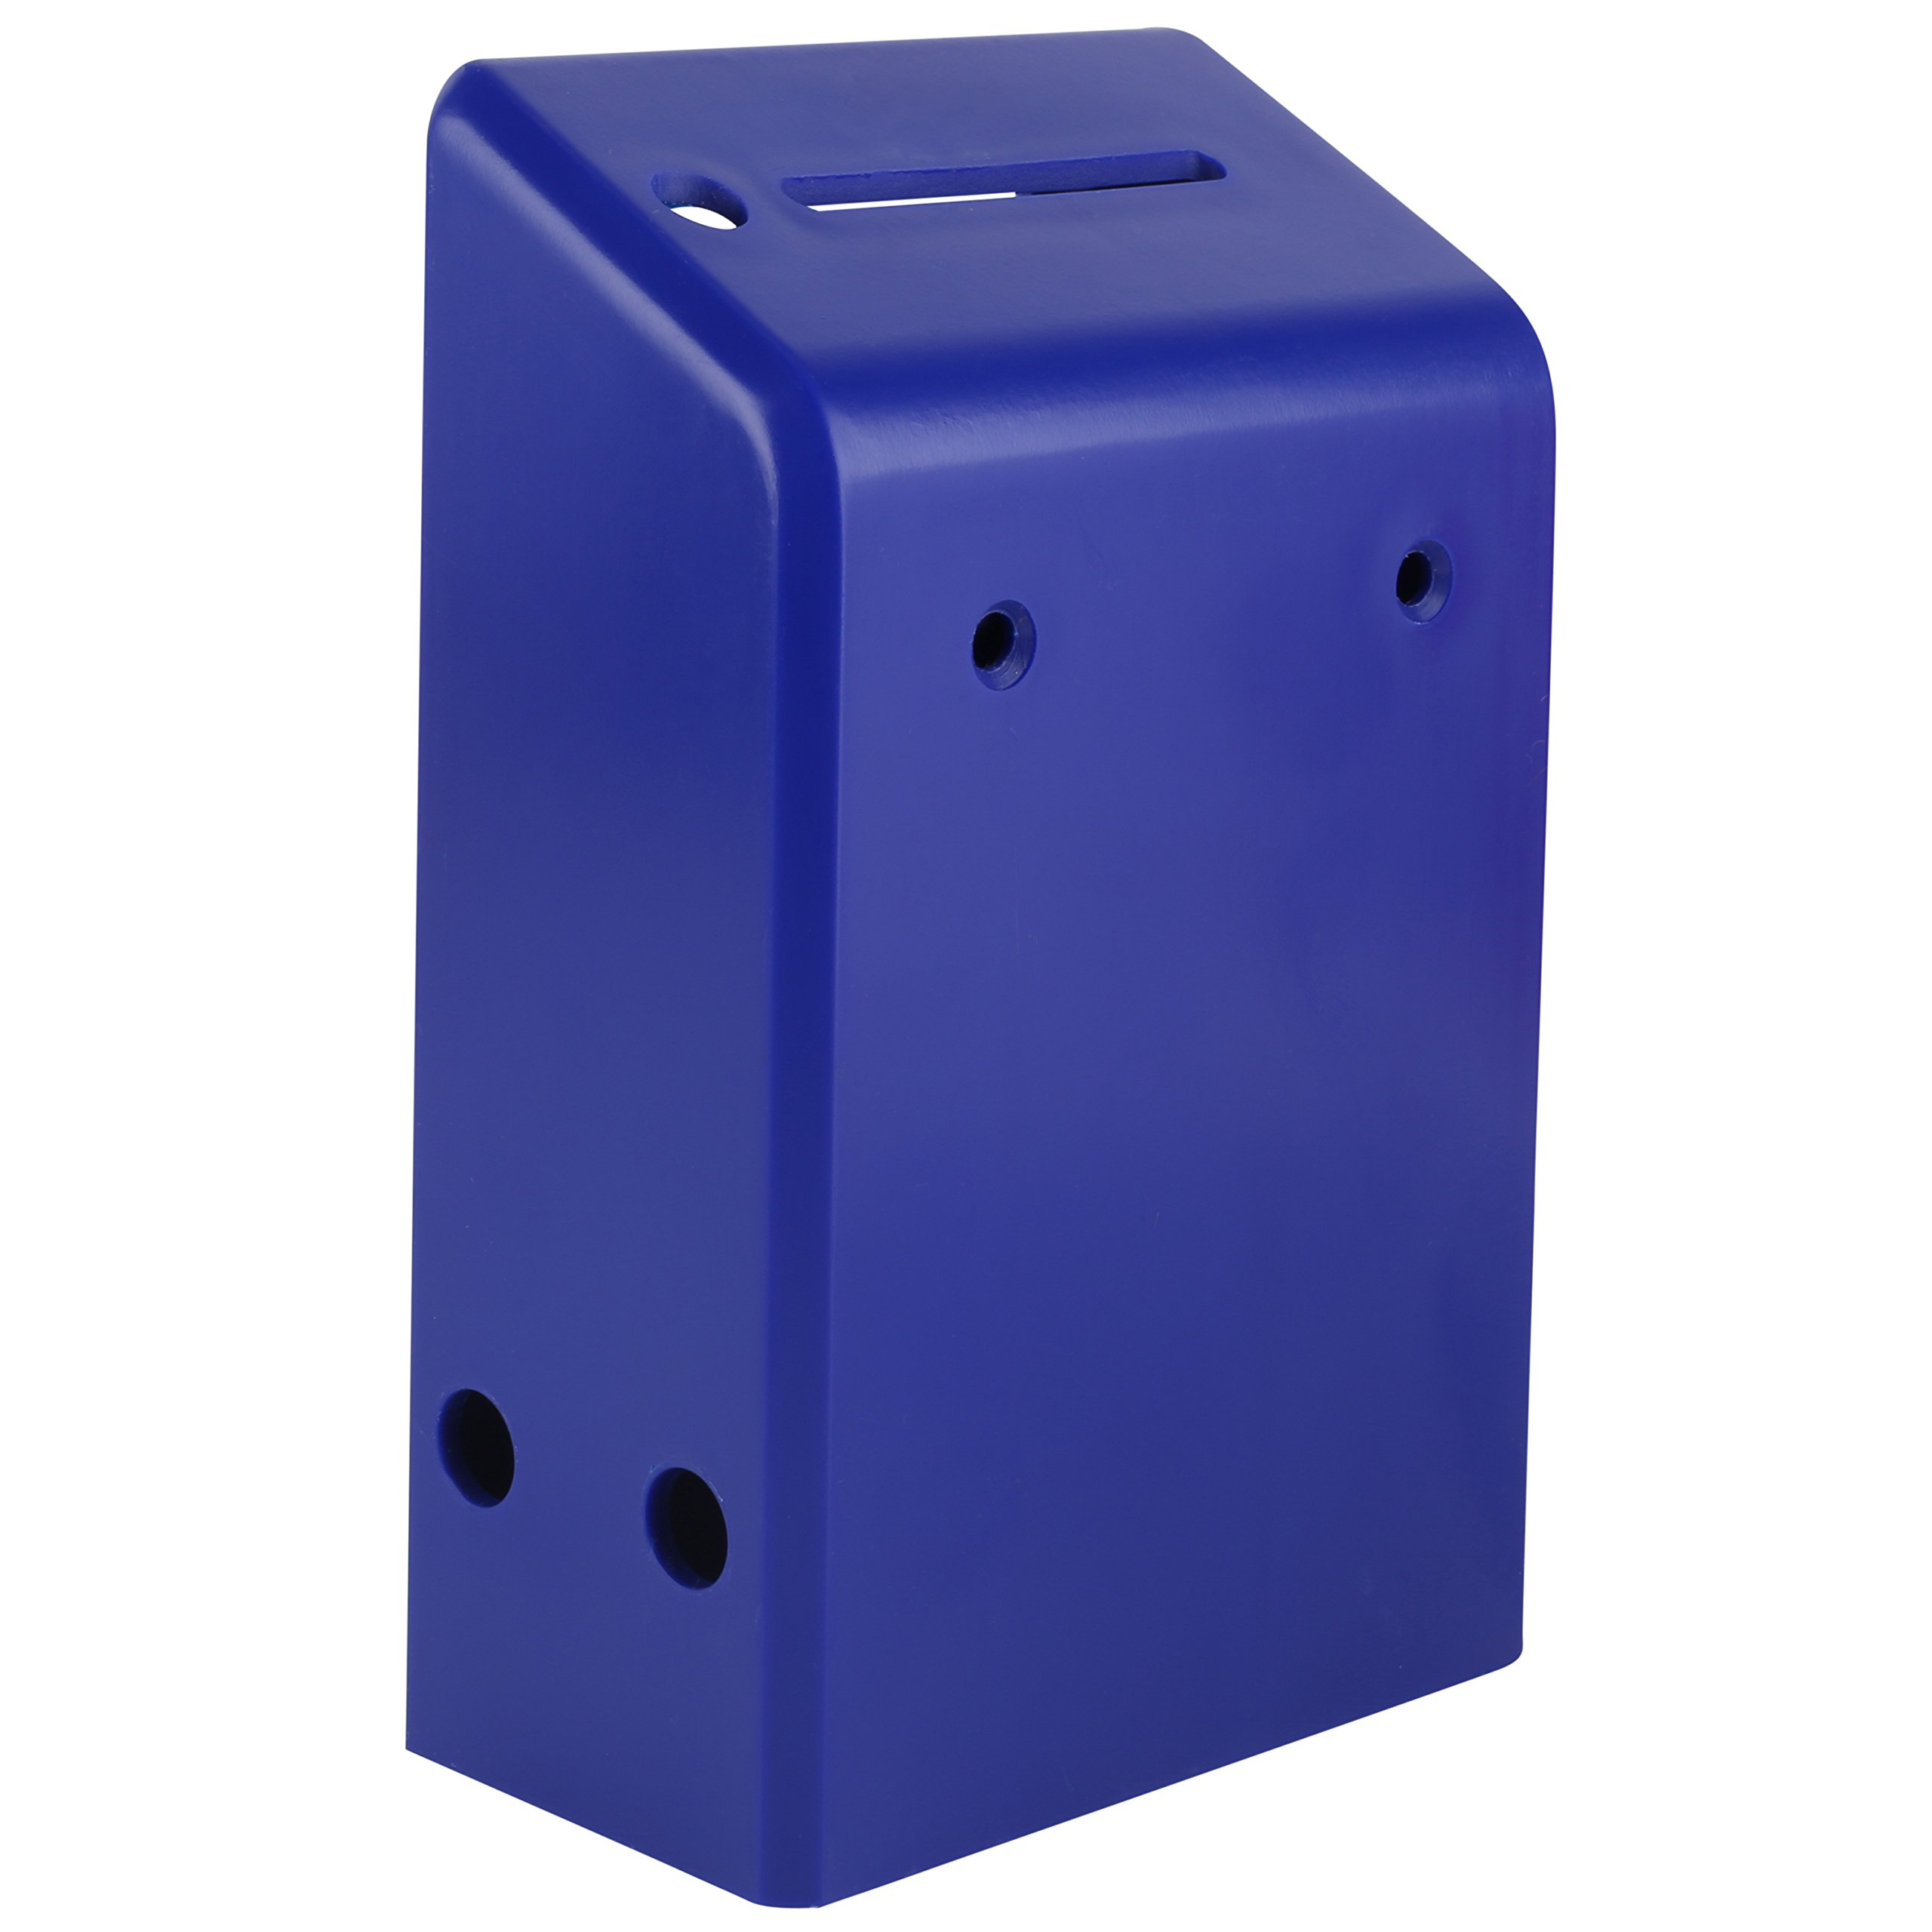 MCB - Plastic Charity Box - Donation Box - Coin Collection Box - Pack of 5 (Blue)